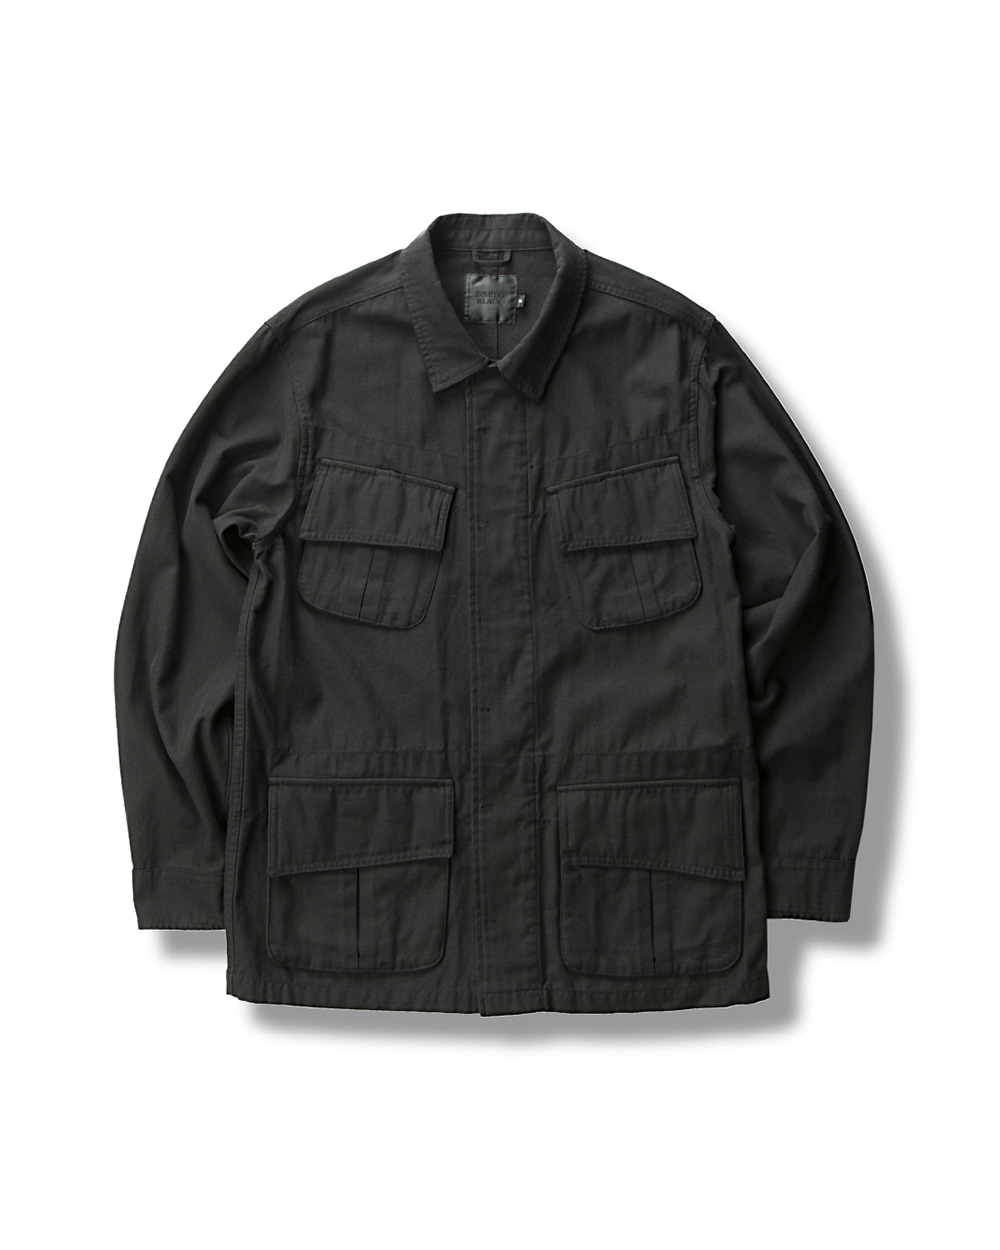 UTILITY JUNGLE FATIGUE JACKET BLACK